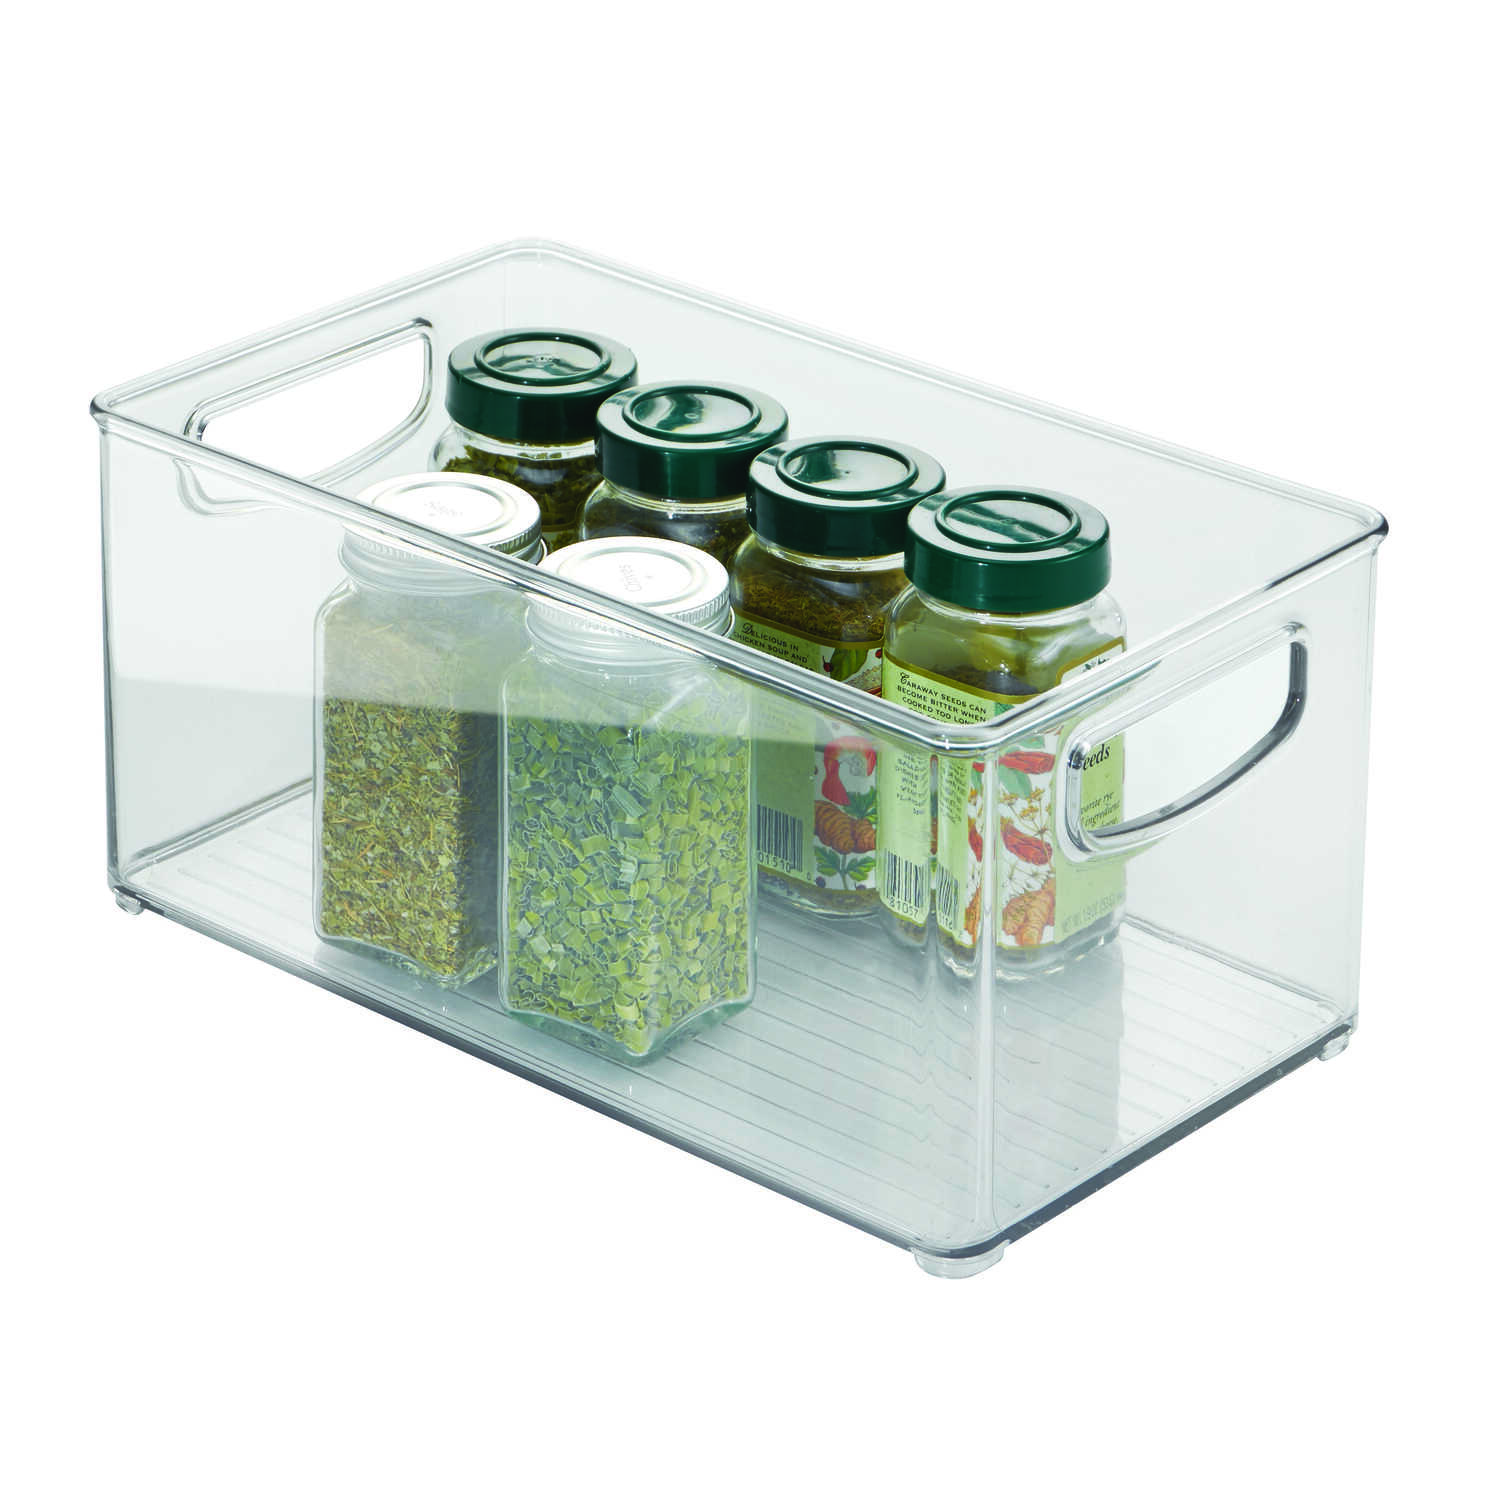 InterDesign  6 in. H x 5 in. W x 10 in. D Stackable Storage Bin